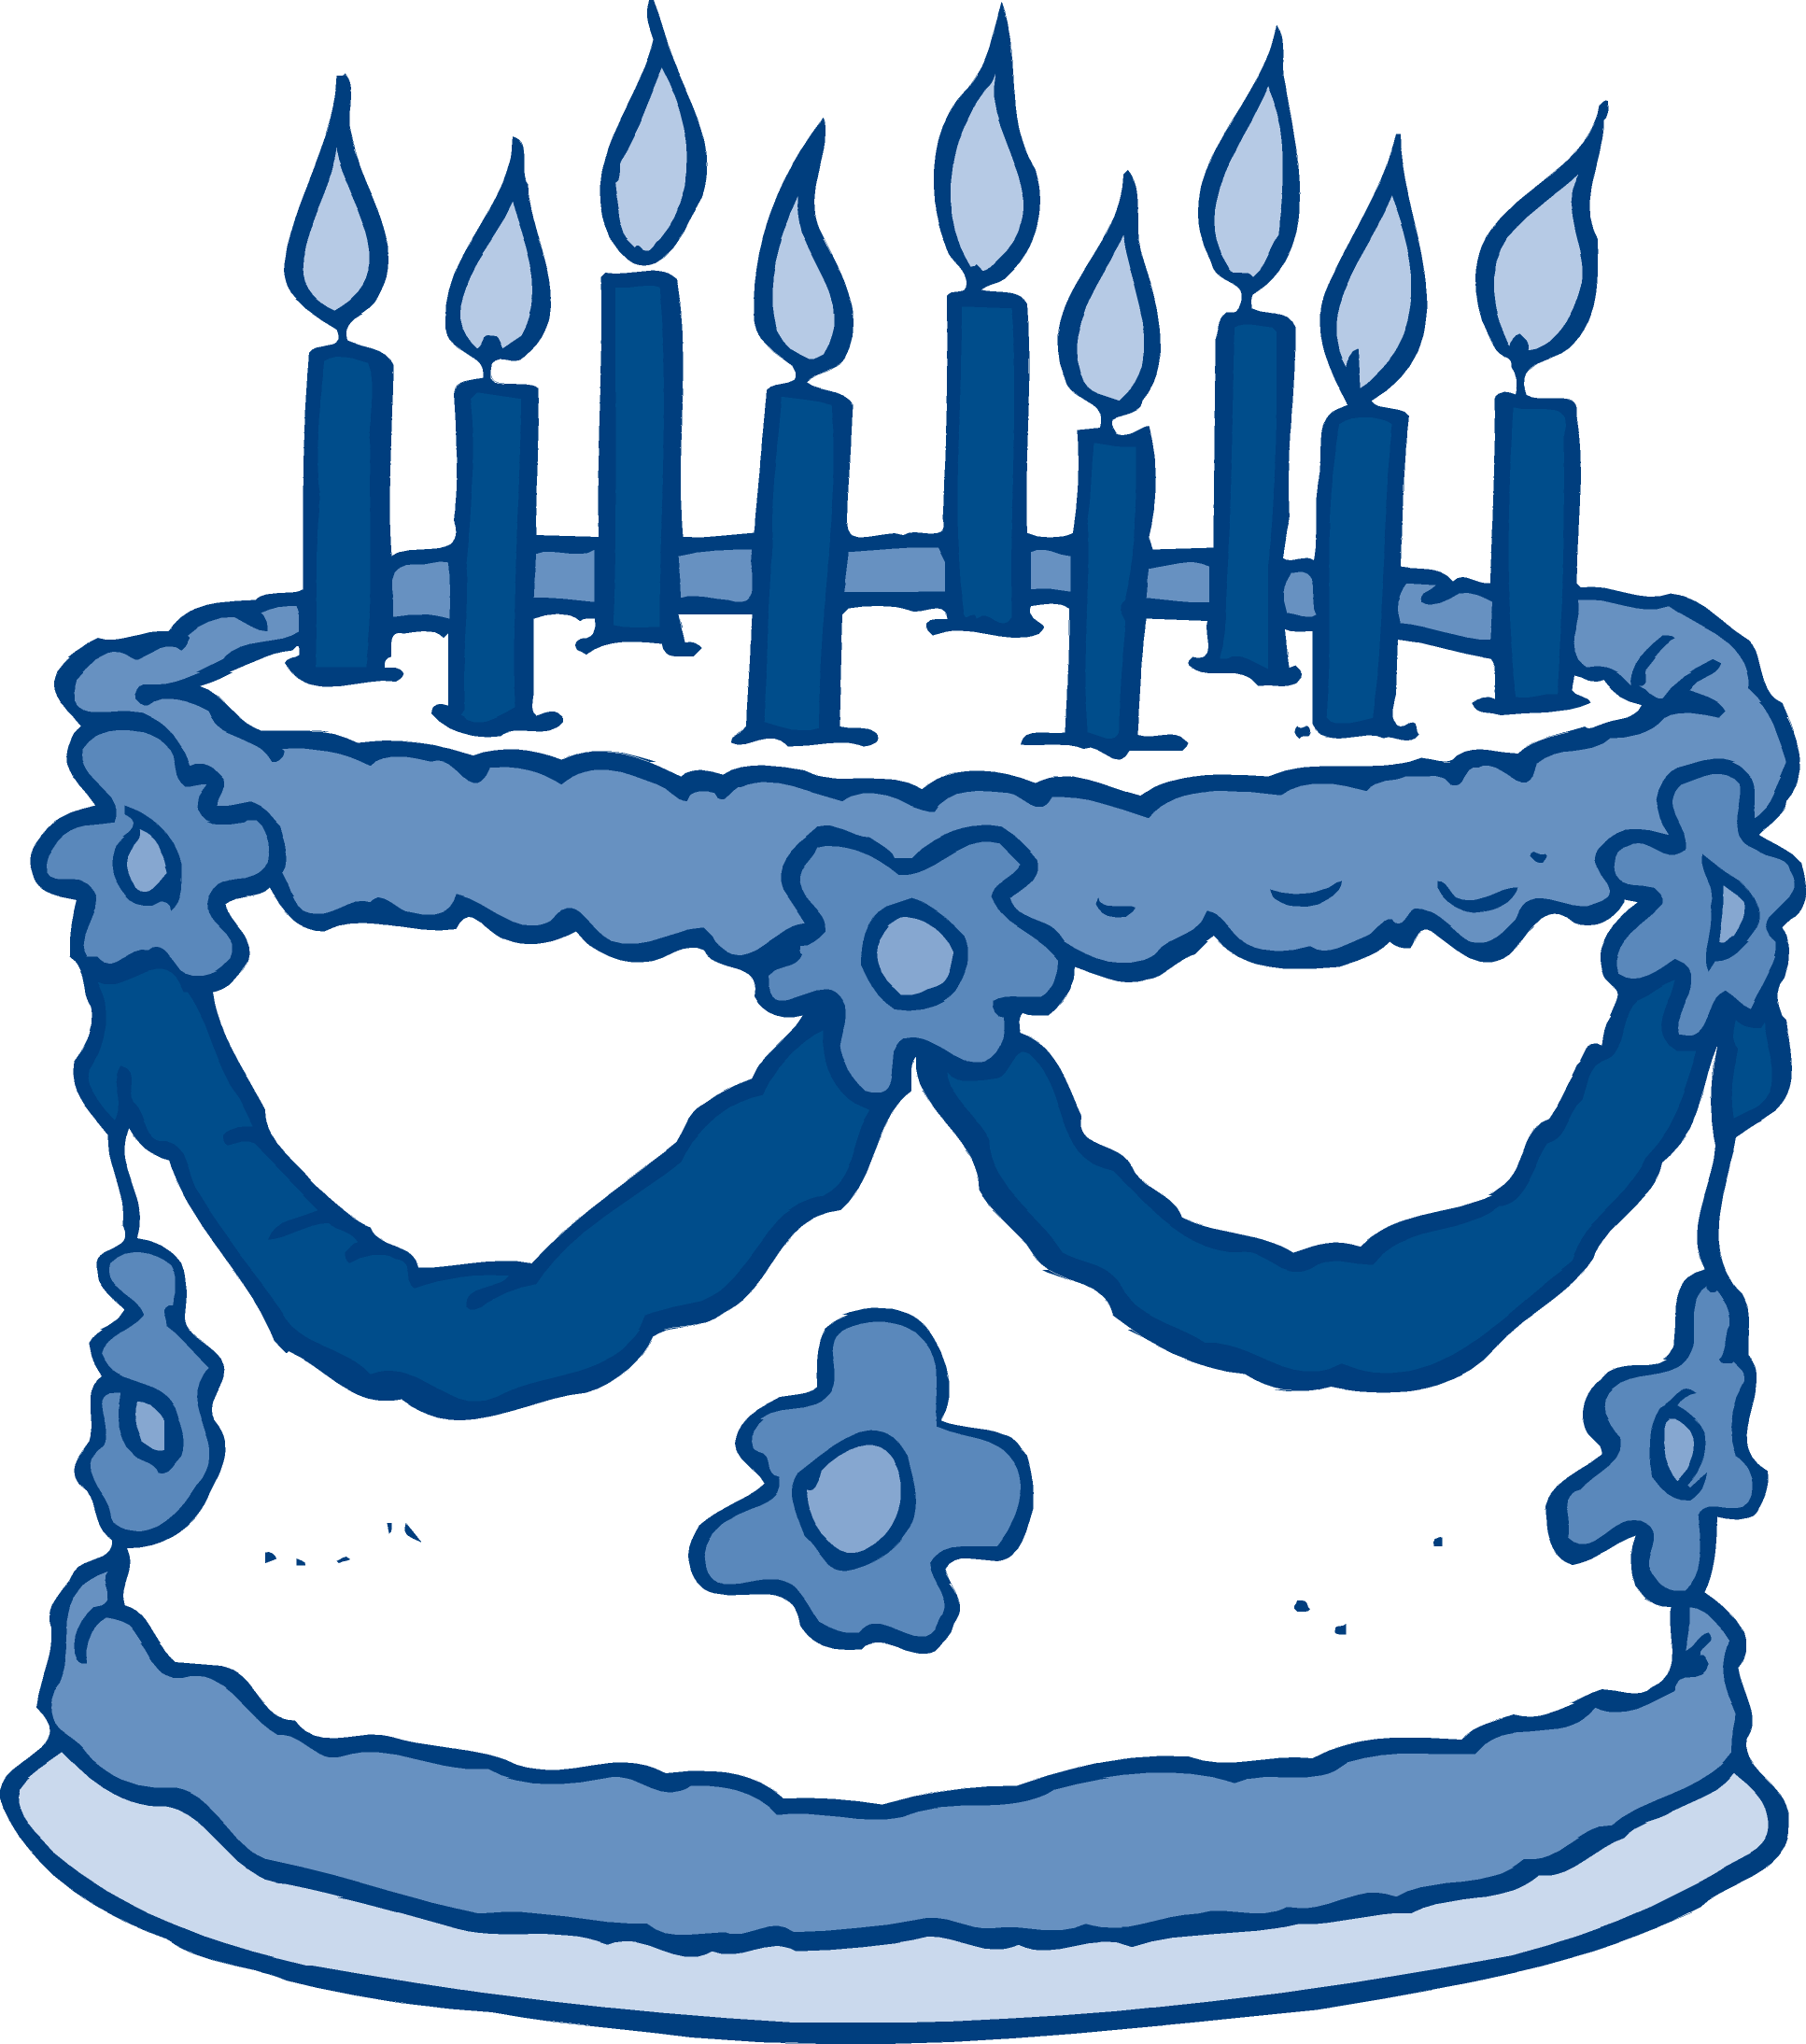 Birthday Cake Images Clip Art - Cliparts.co